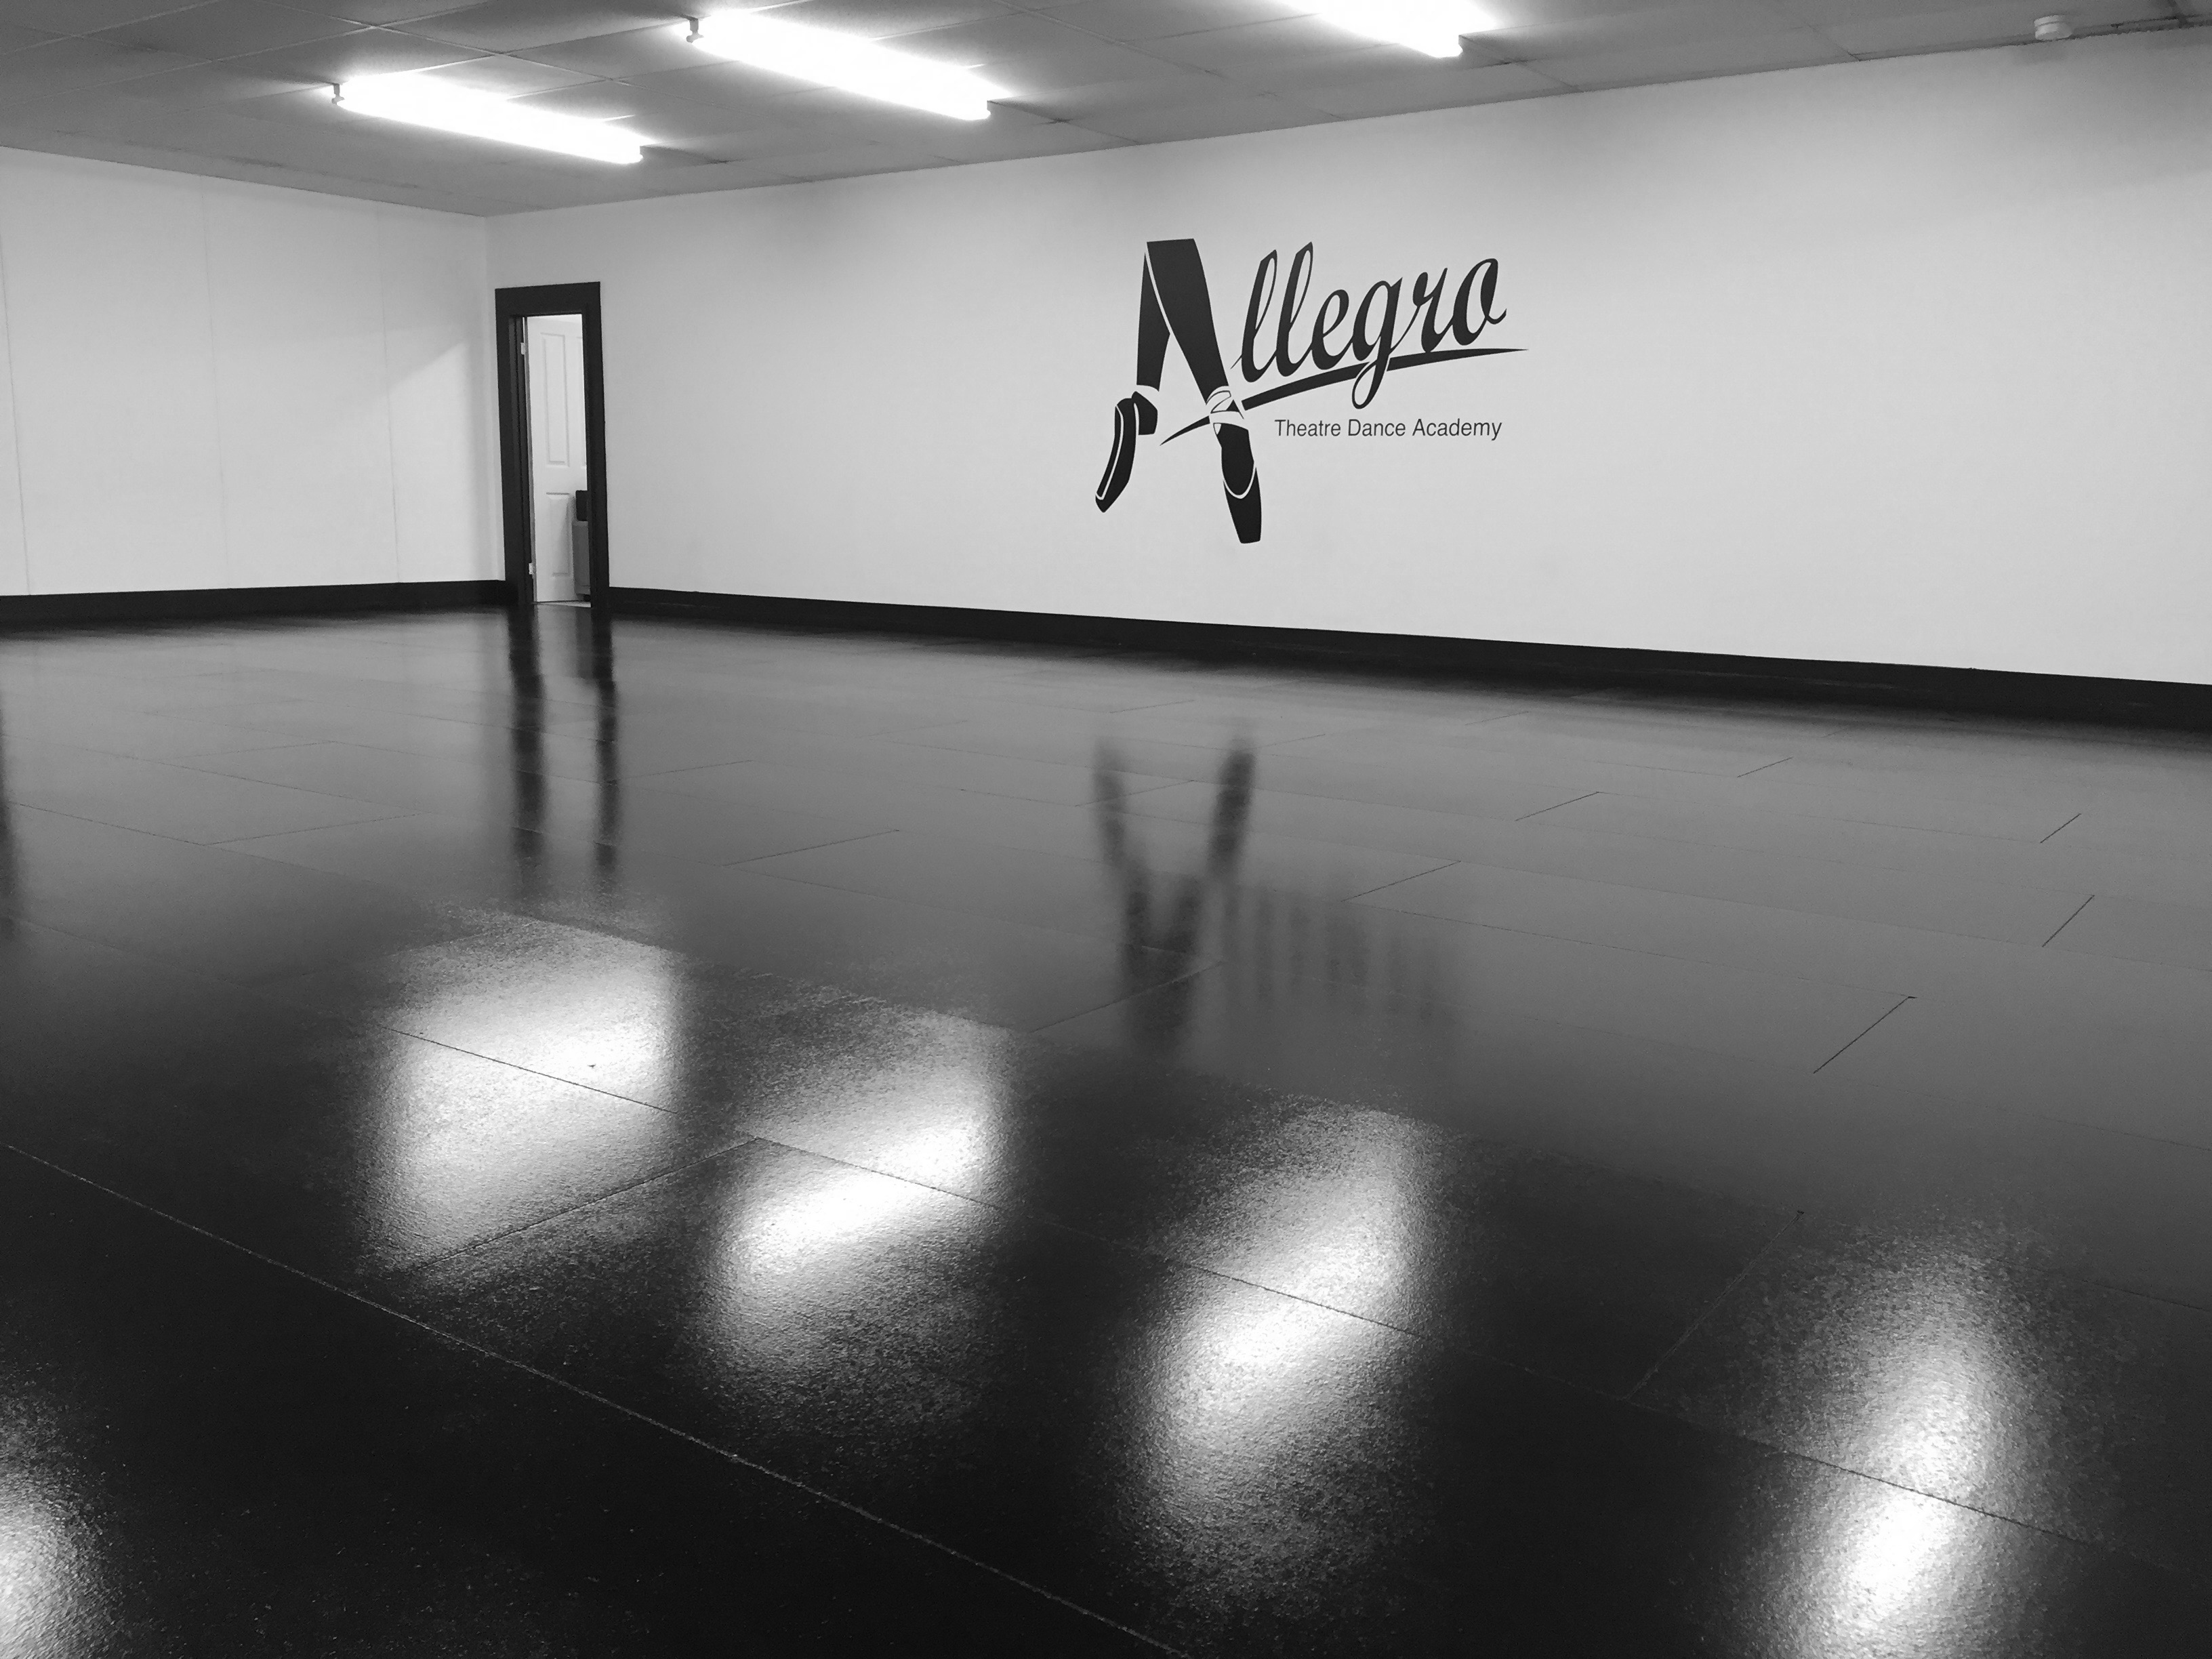 Studio1-main-Allegro-Theatre-Dance-Academy.jpg